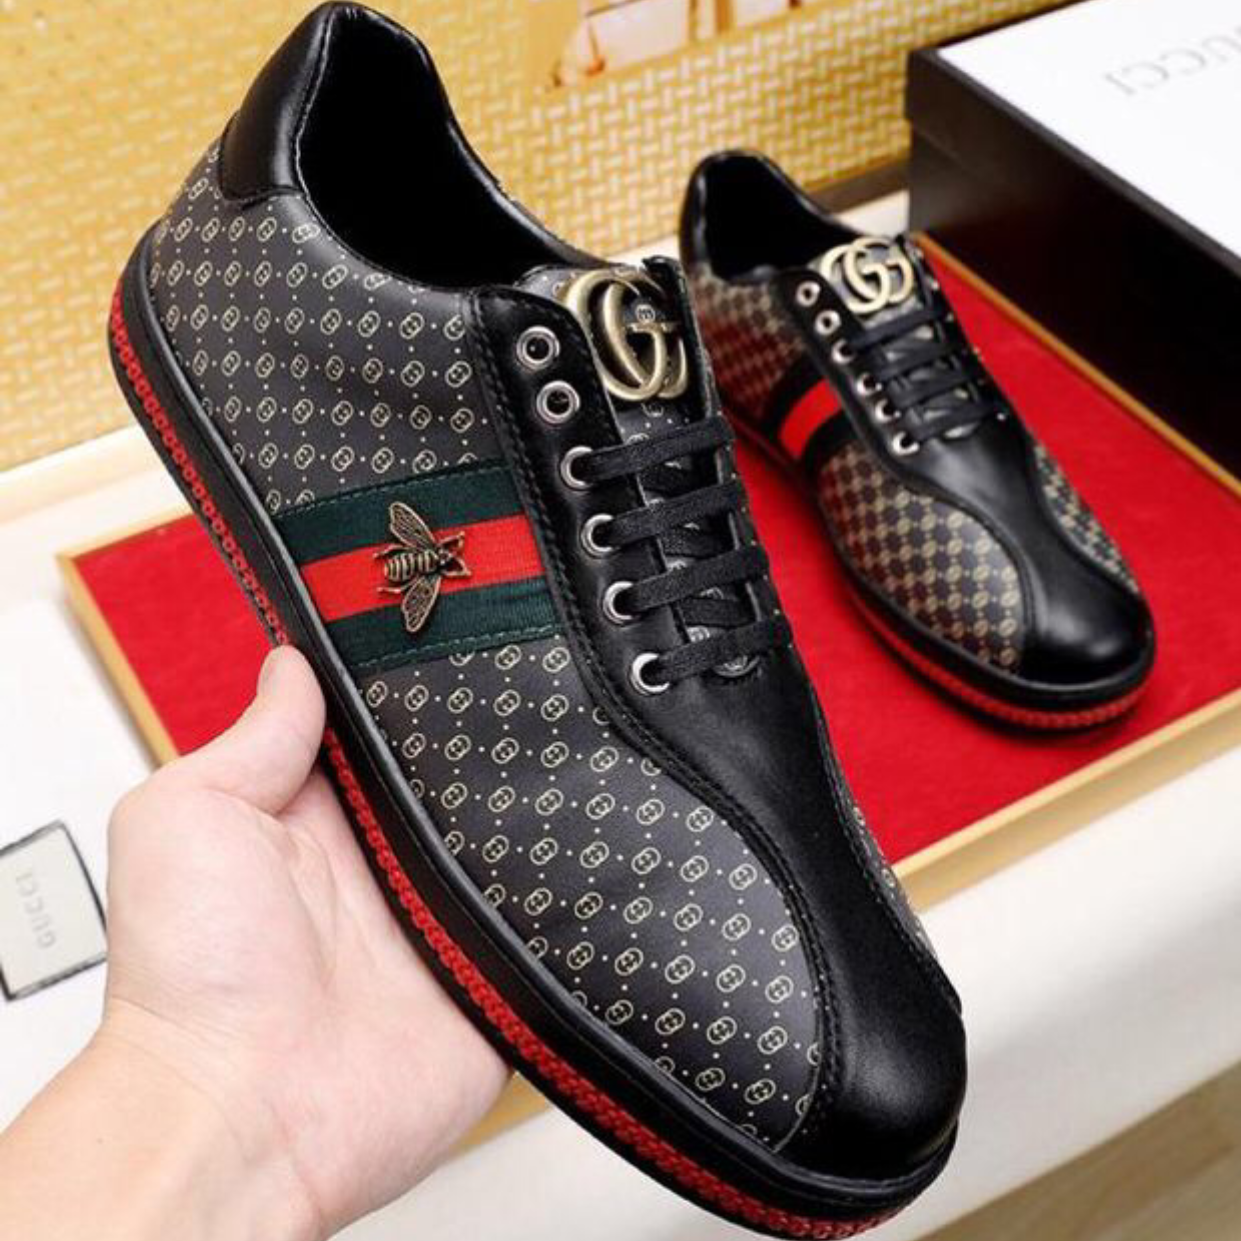 Gucci Man or Woman casual shoes – Tamy